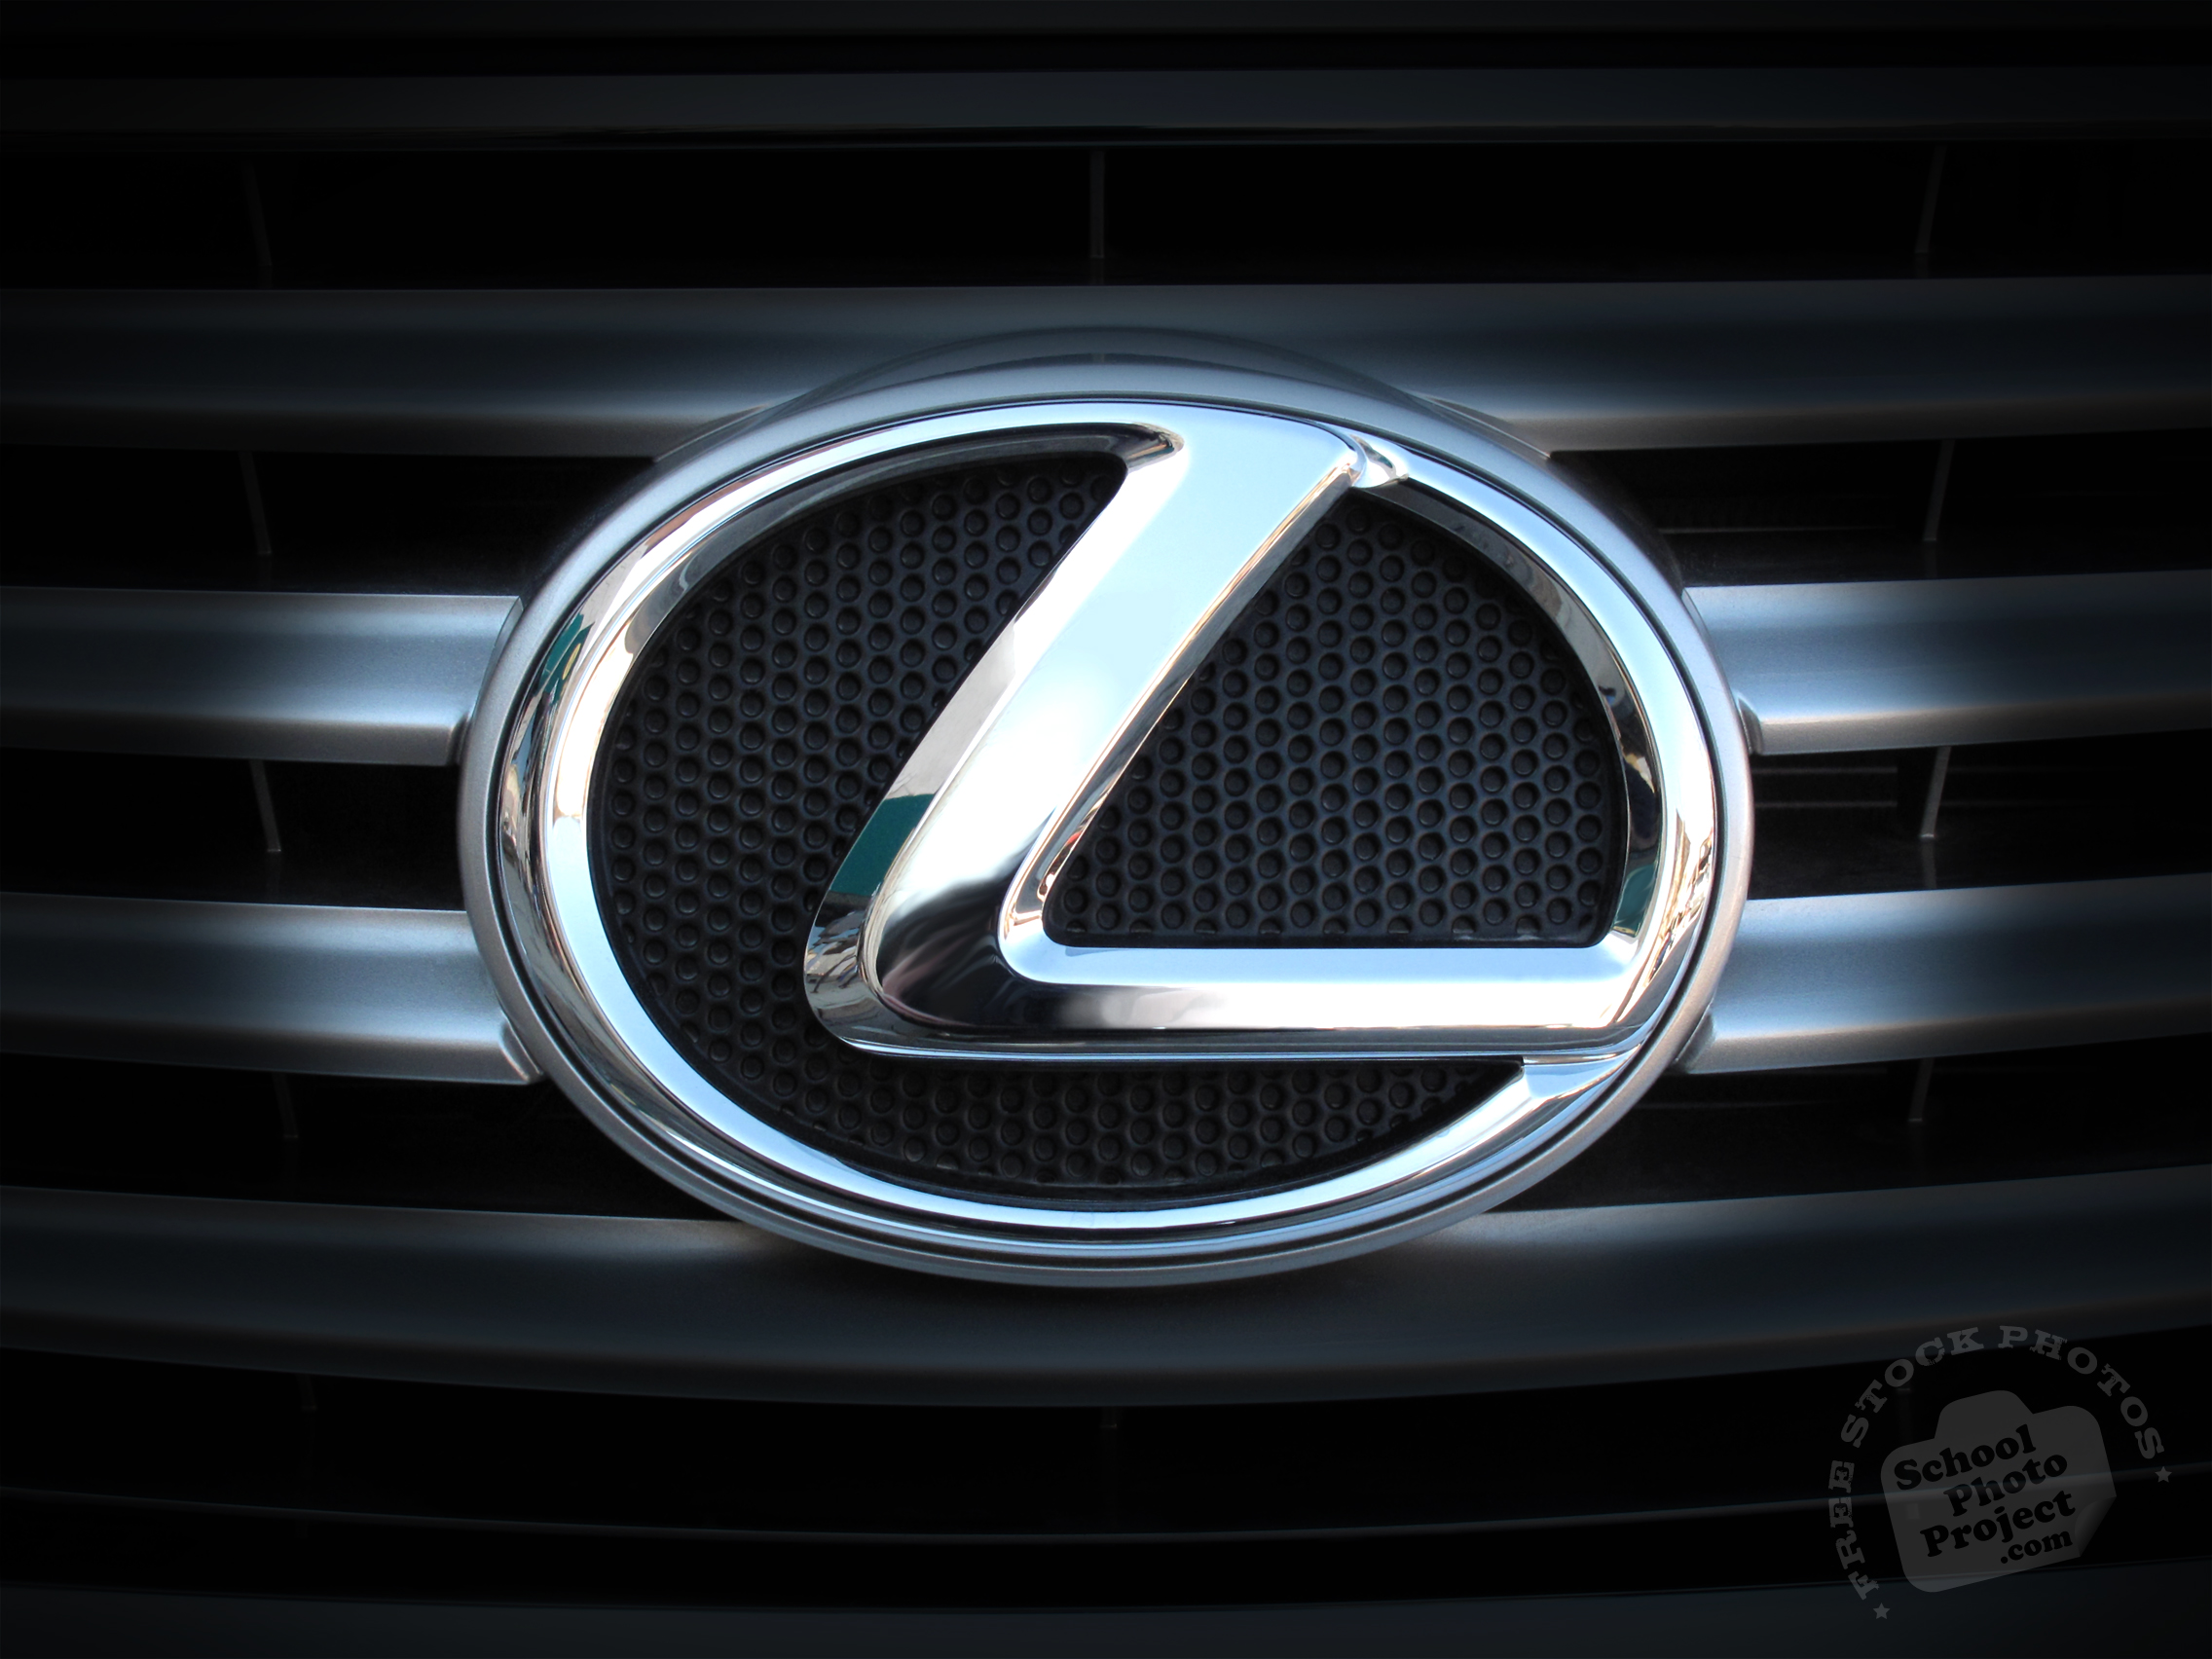 Lexus Logo, FREE Stock Photo, Image, Picture: Lexus Logo